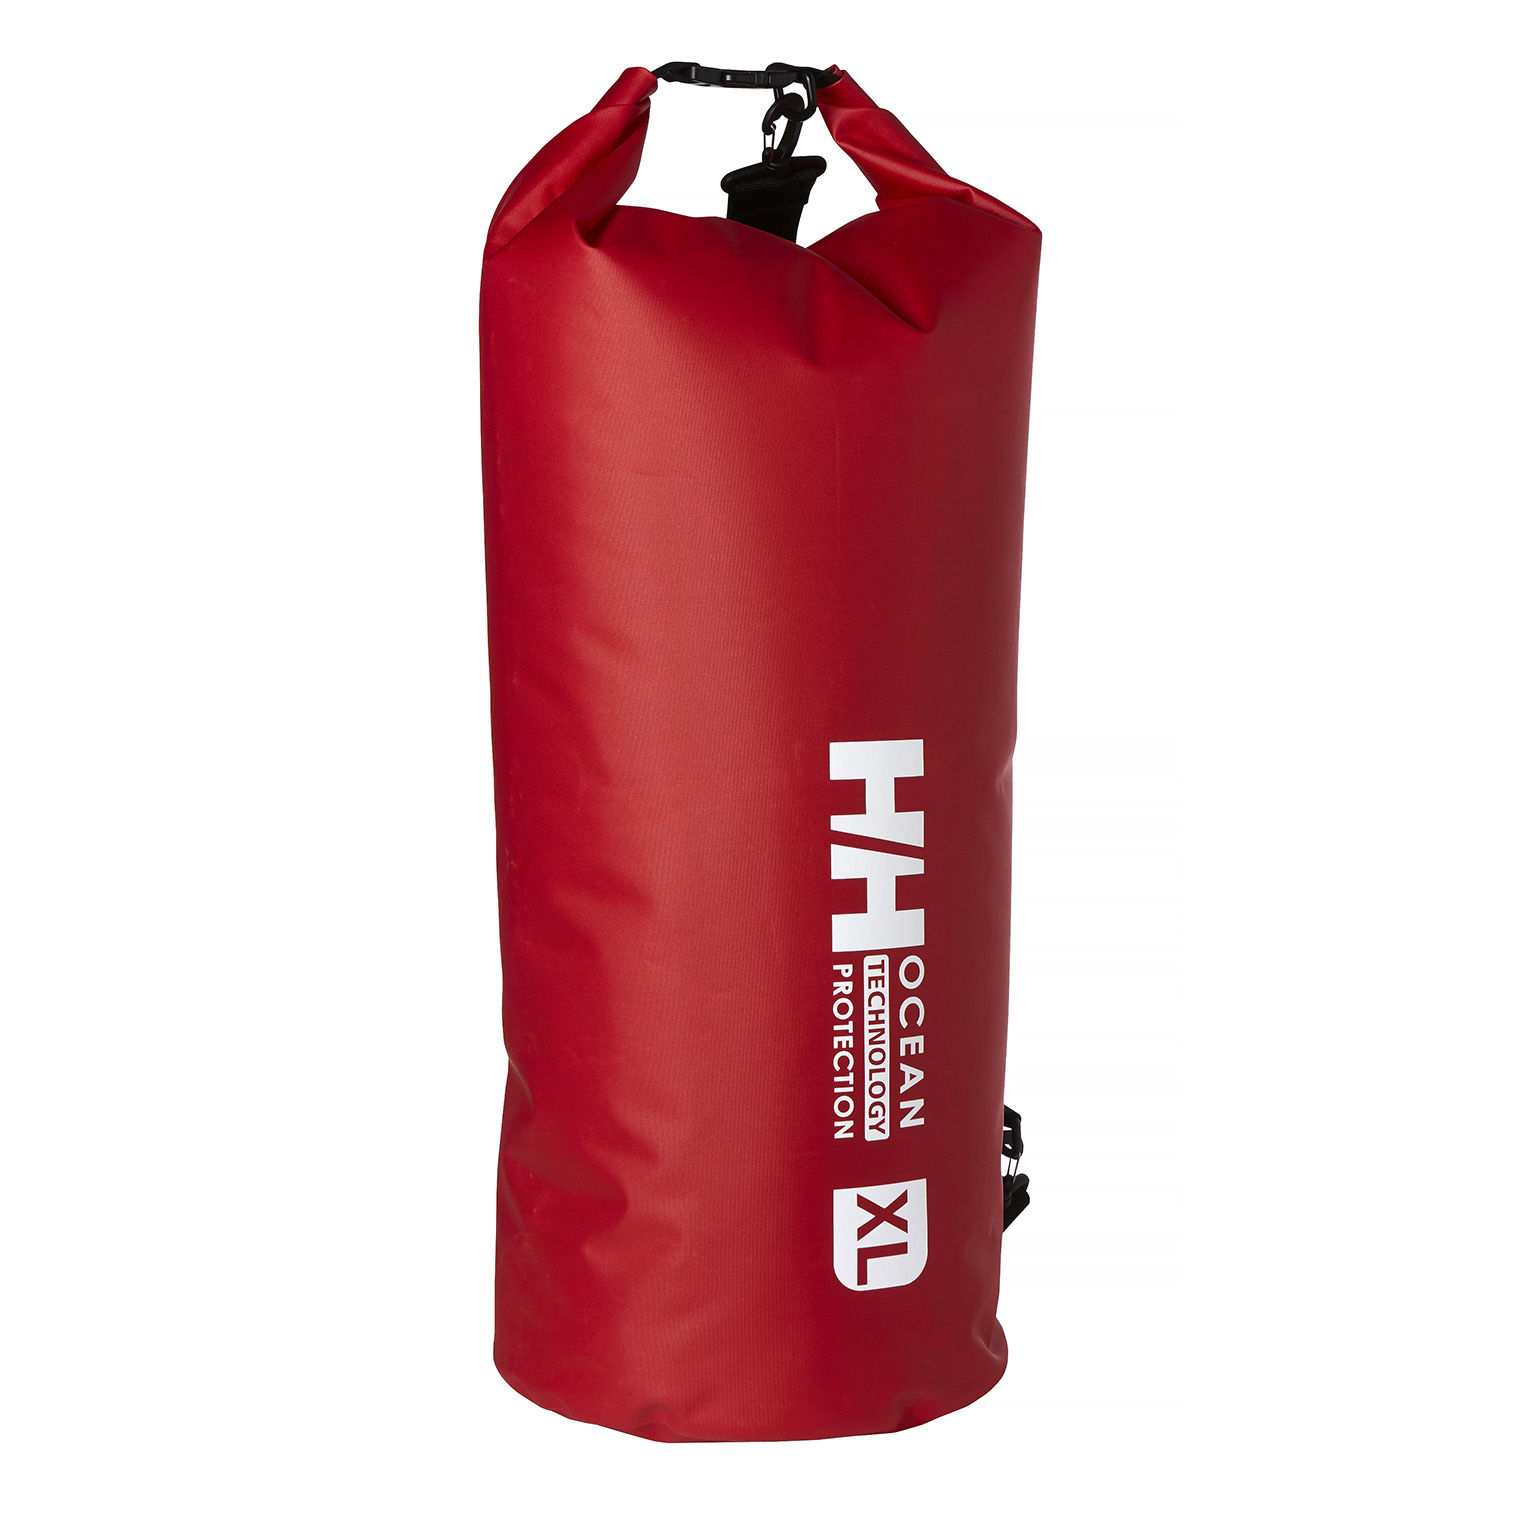 Helly Hansen Ocean Dry Bag XL (67371)